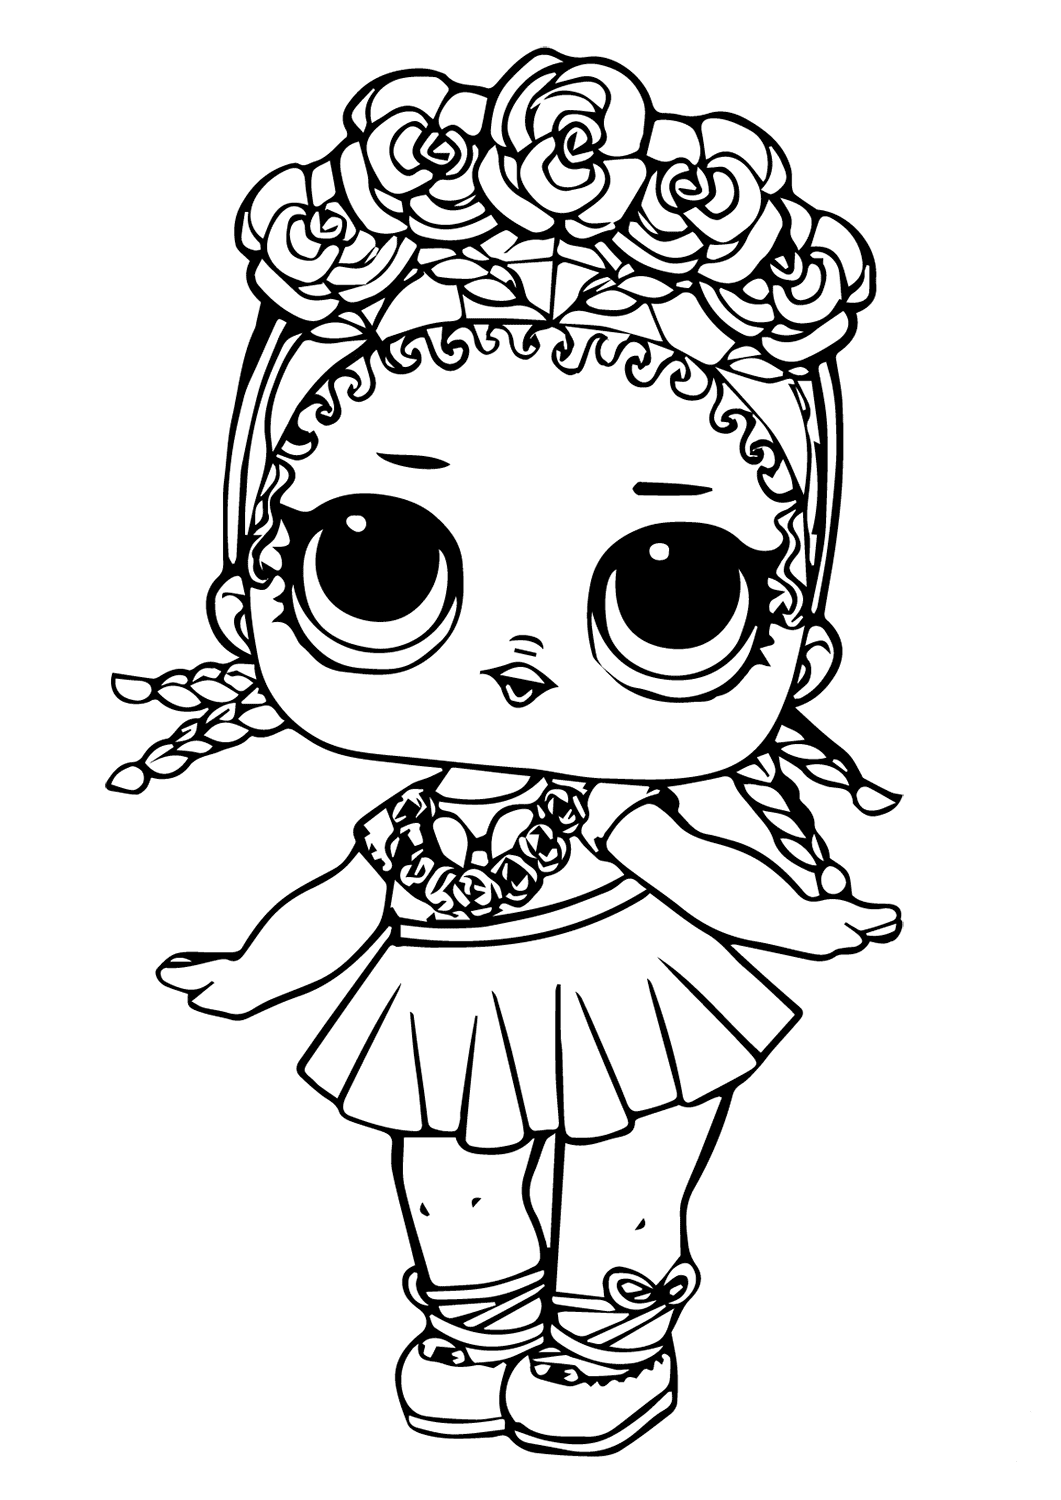 LOL Surprise Doll Coloring Sheets Coconut Q.T